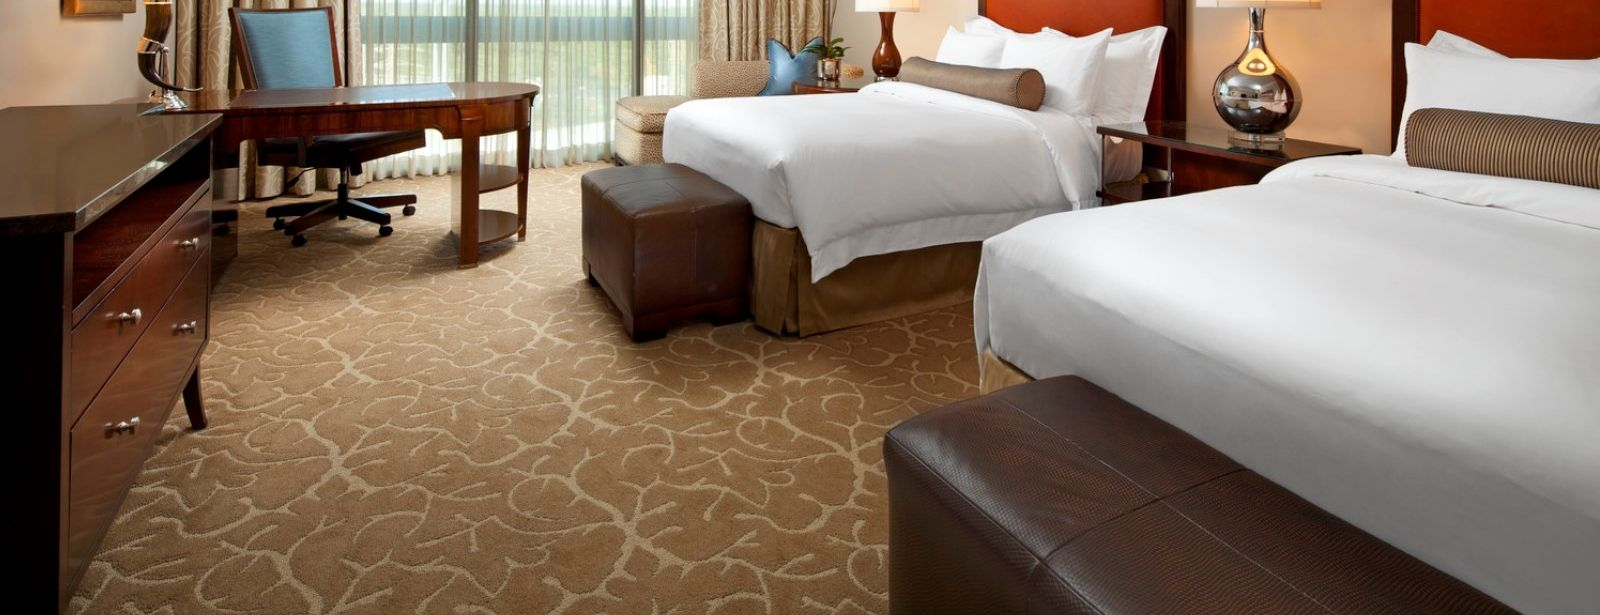 Superior Guest Room - Luxury Hotels in Houston - Th